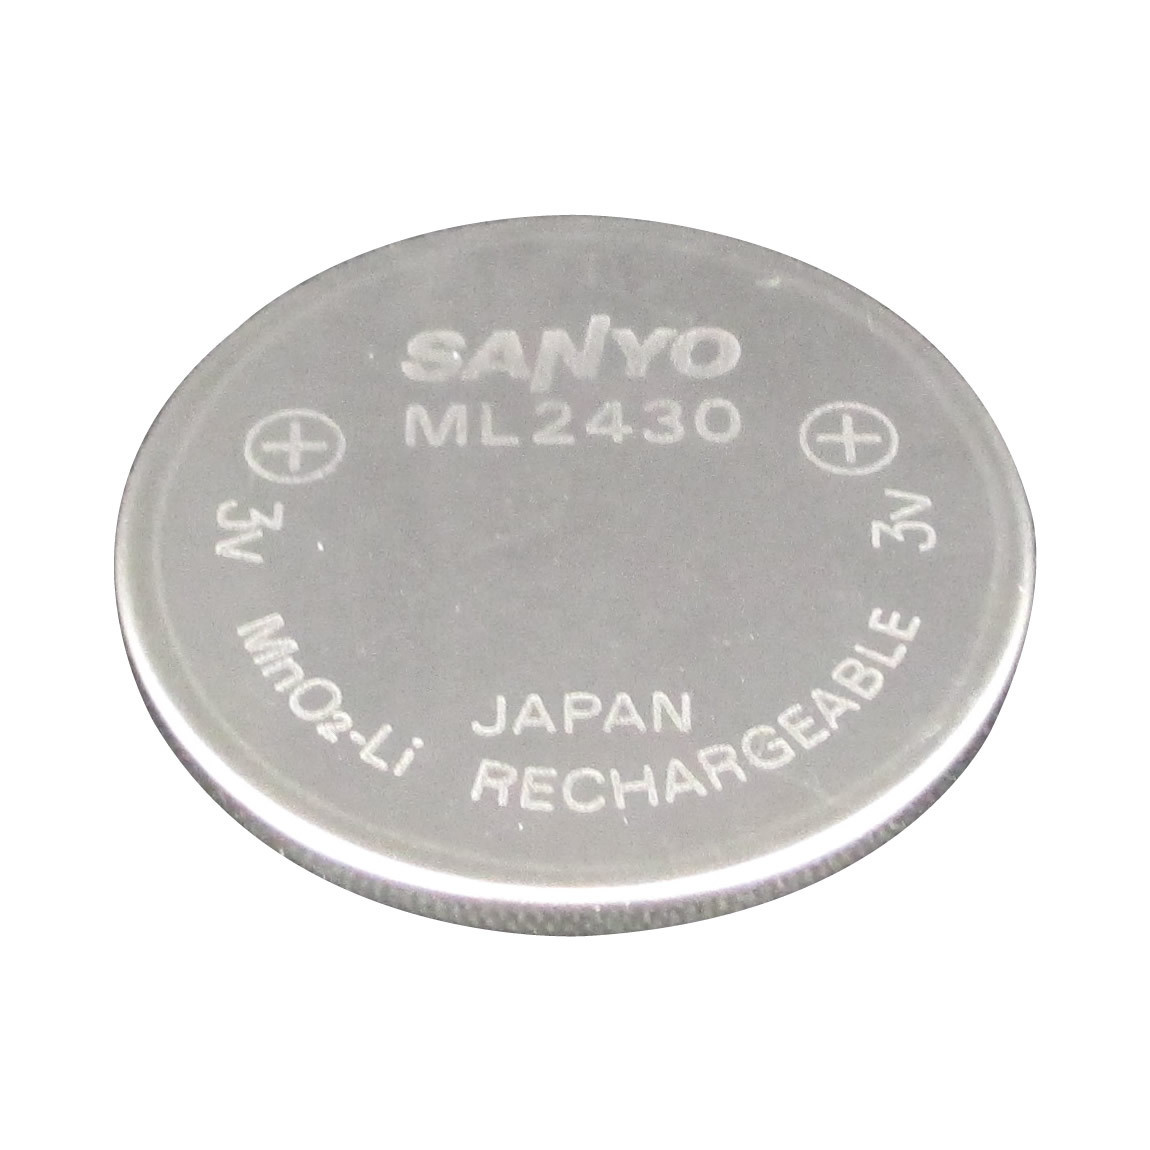 Ml2430 Sanyo Battery 3v Rechargeable Mno2 Li Lithium Cell